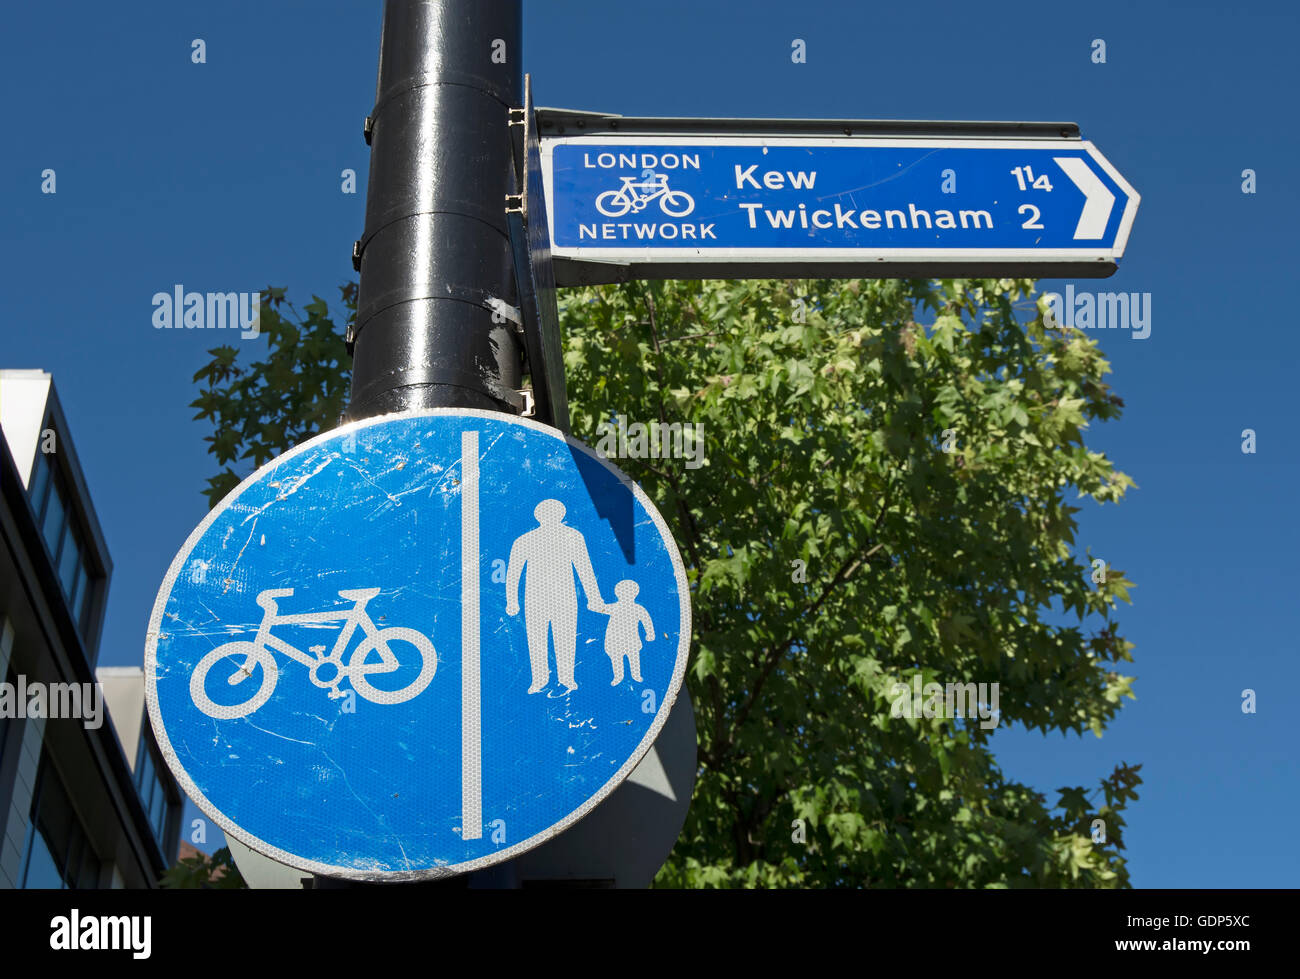 cyclist and pedestrian segregated  lanes sign and cycle route sign giving directions to kew and twickenham, in richmond, - Stock Image